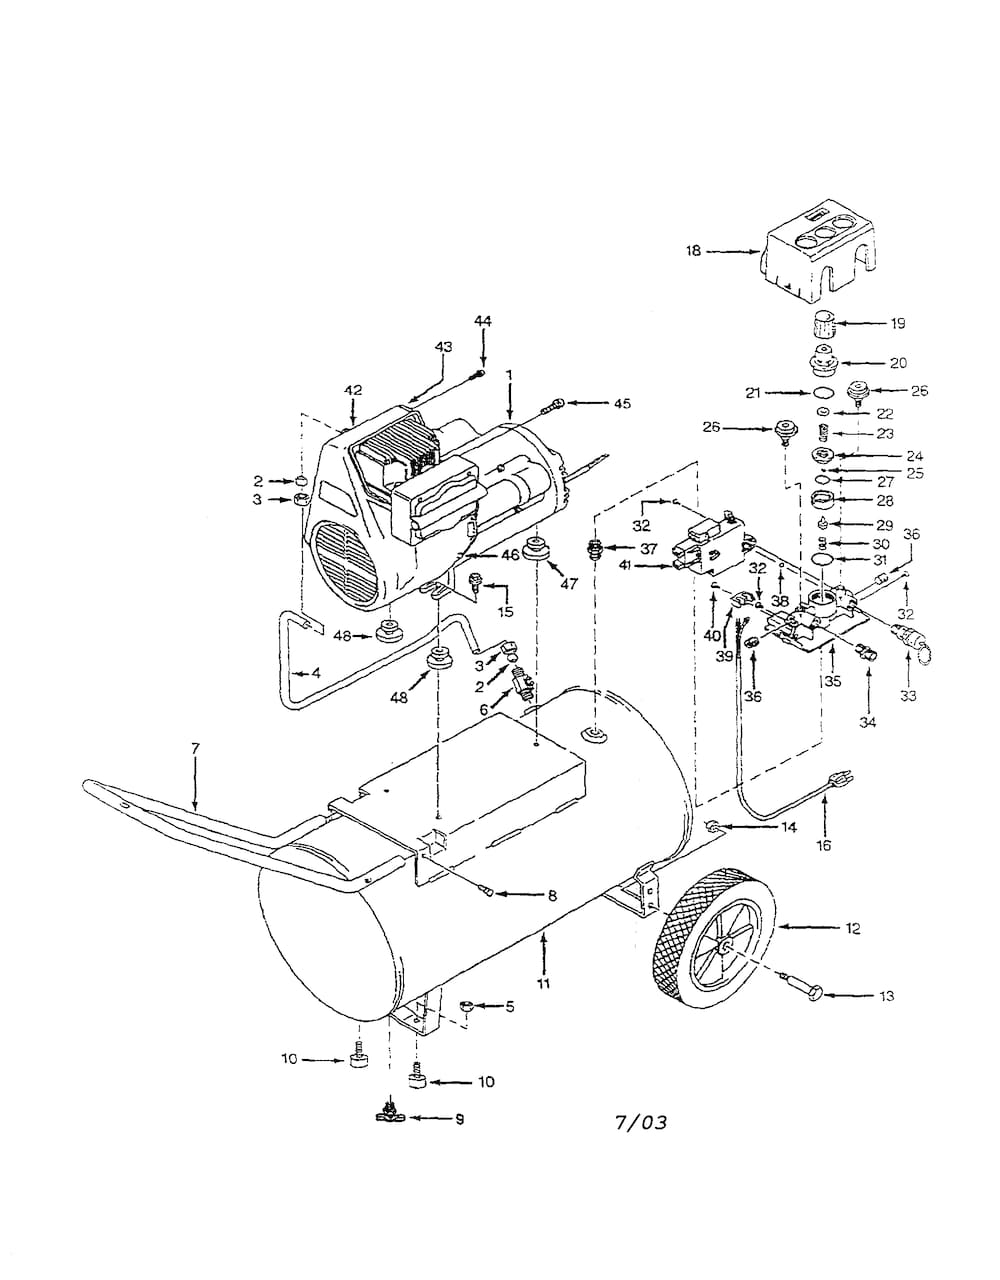 Campbell-Hausfeld Portable Air Compressors Parts | Model Wl6007 for Campbell Hausfeld Air Compressor Parts Diagram